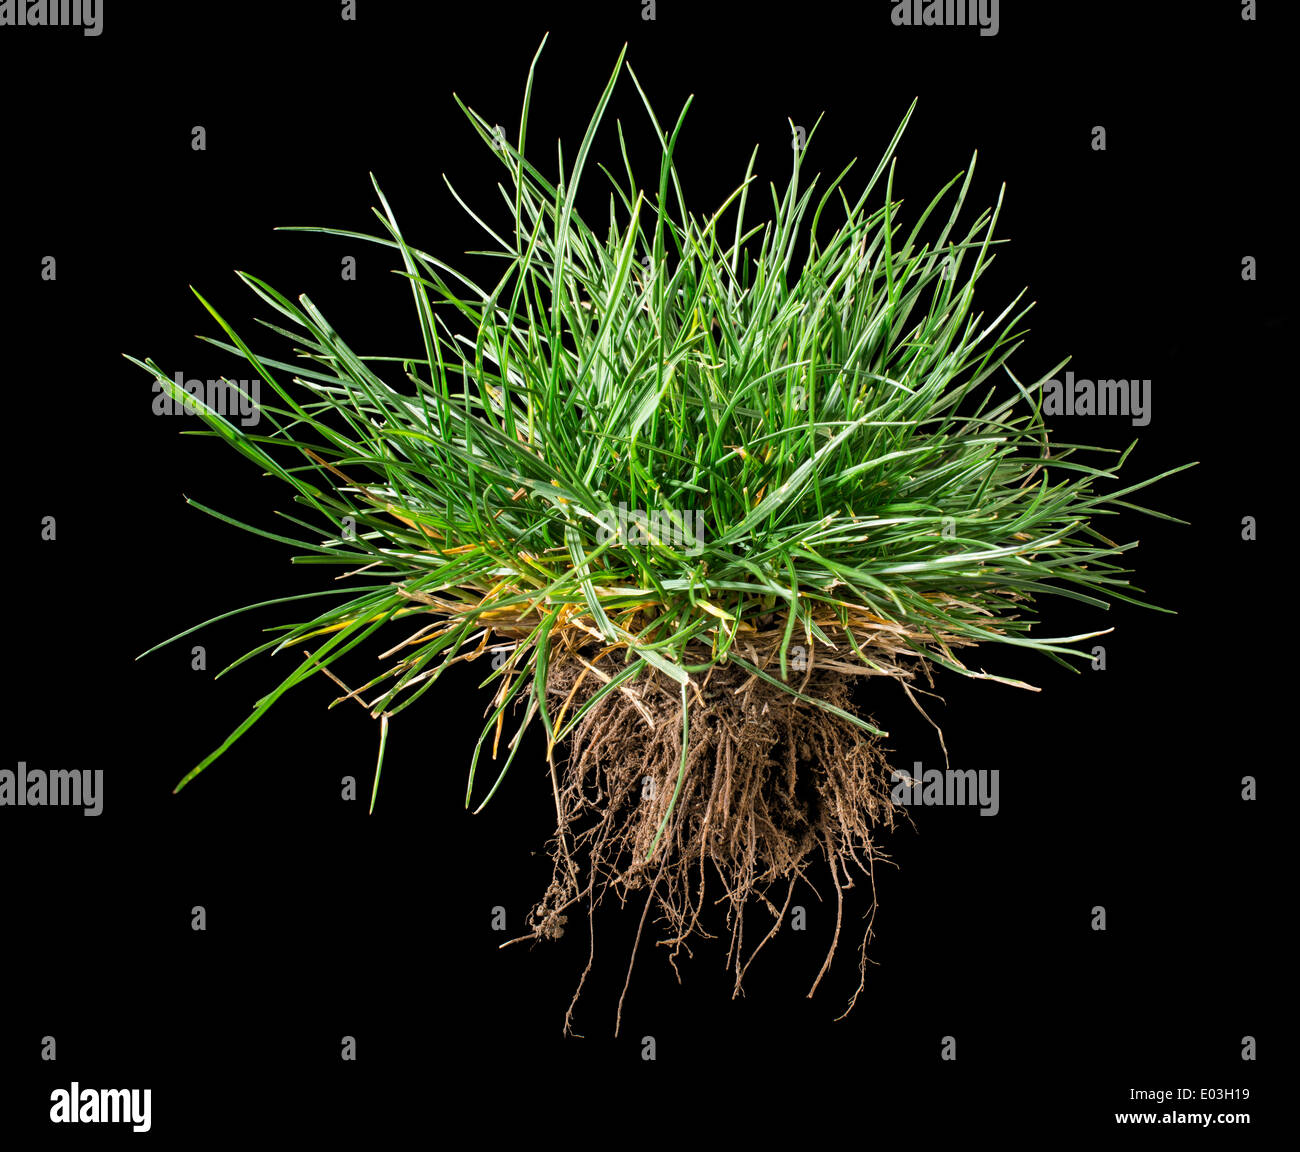 Black isolated turf grass and earth. Rhizome - Stock Image